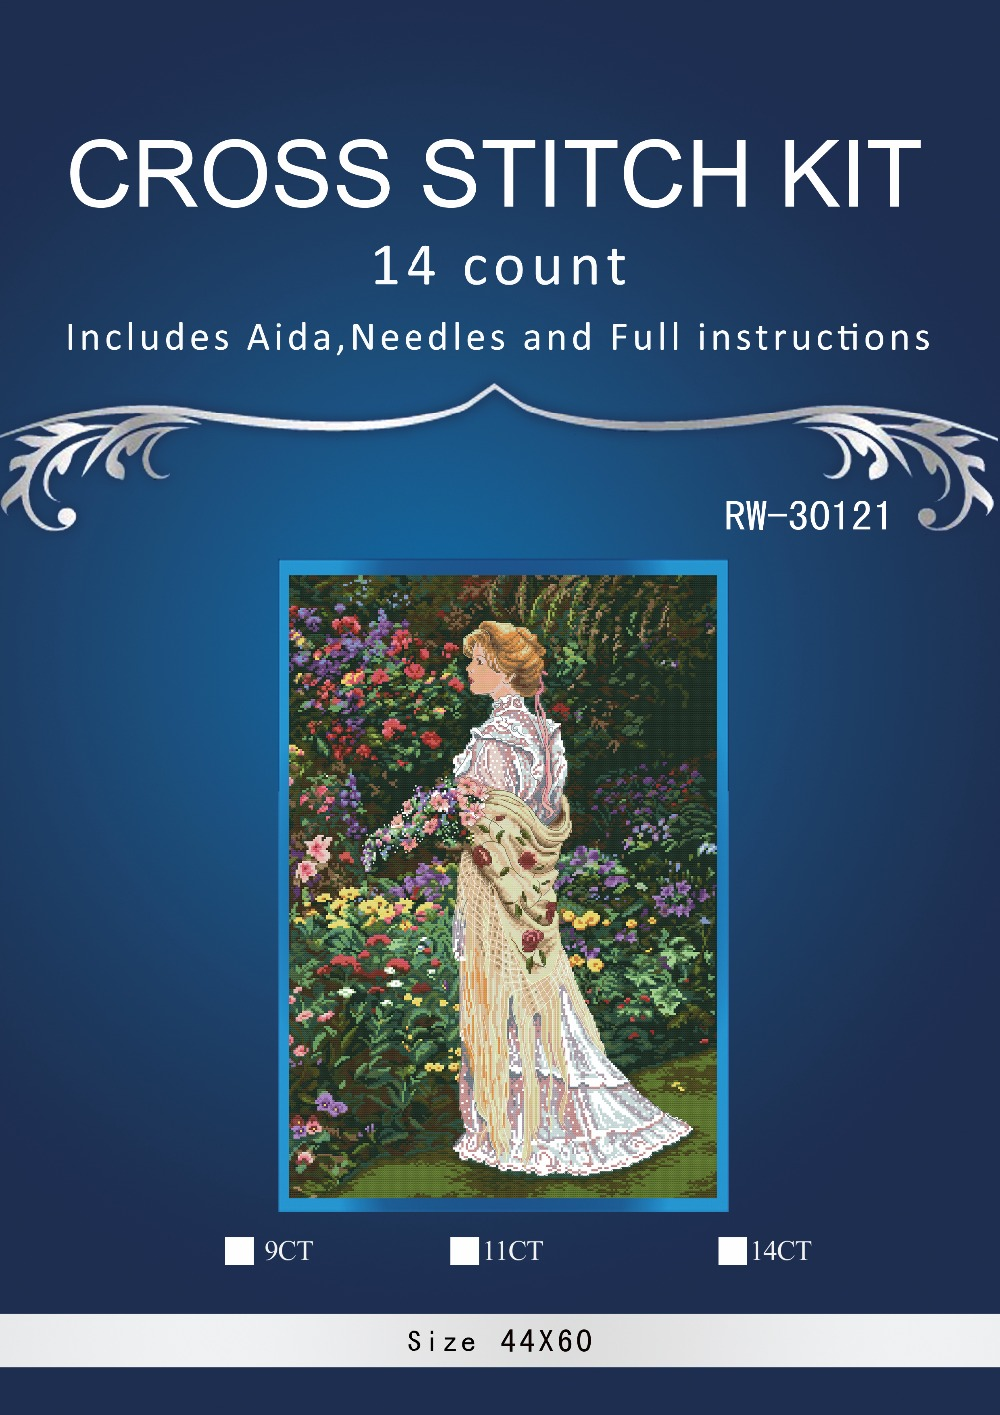 Top Quality Beautiful Nostalgic Counted Cross Stitch Kit Dimensions 35119 In Her Garden Lady Woman Girl